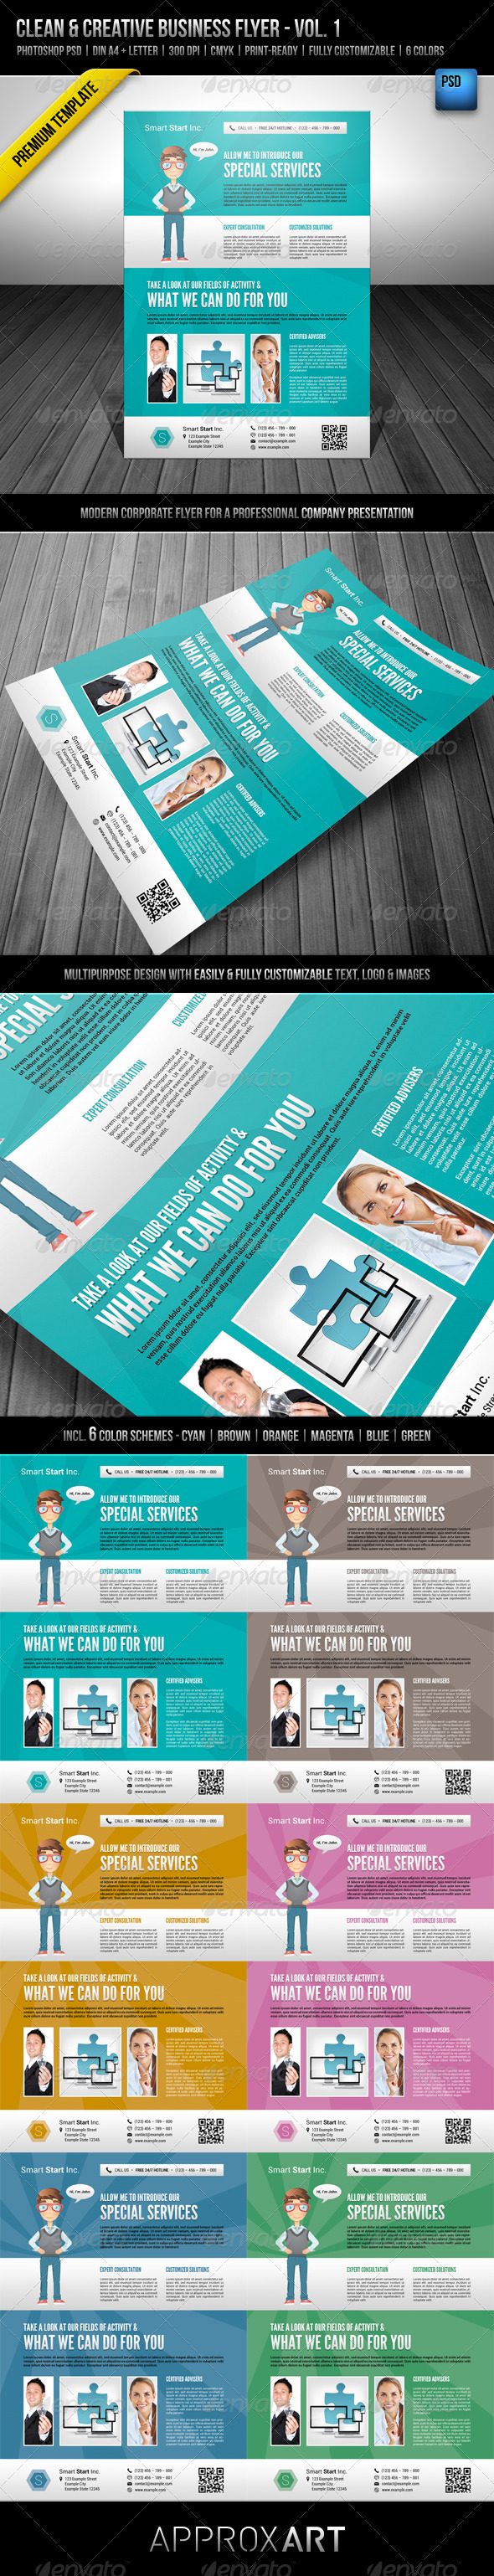 GraphicRiver Clean & Creative Business Flyer Vol 1 2653203